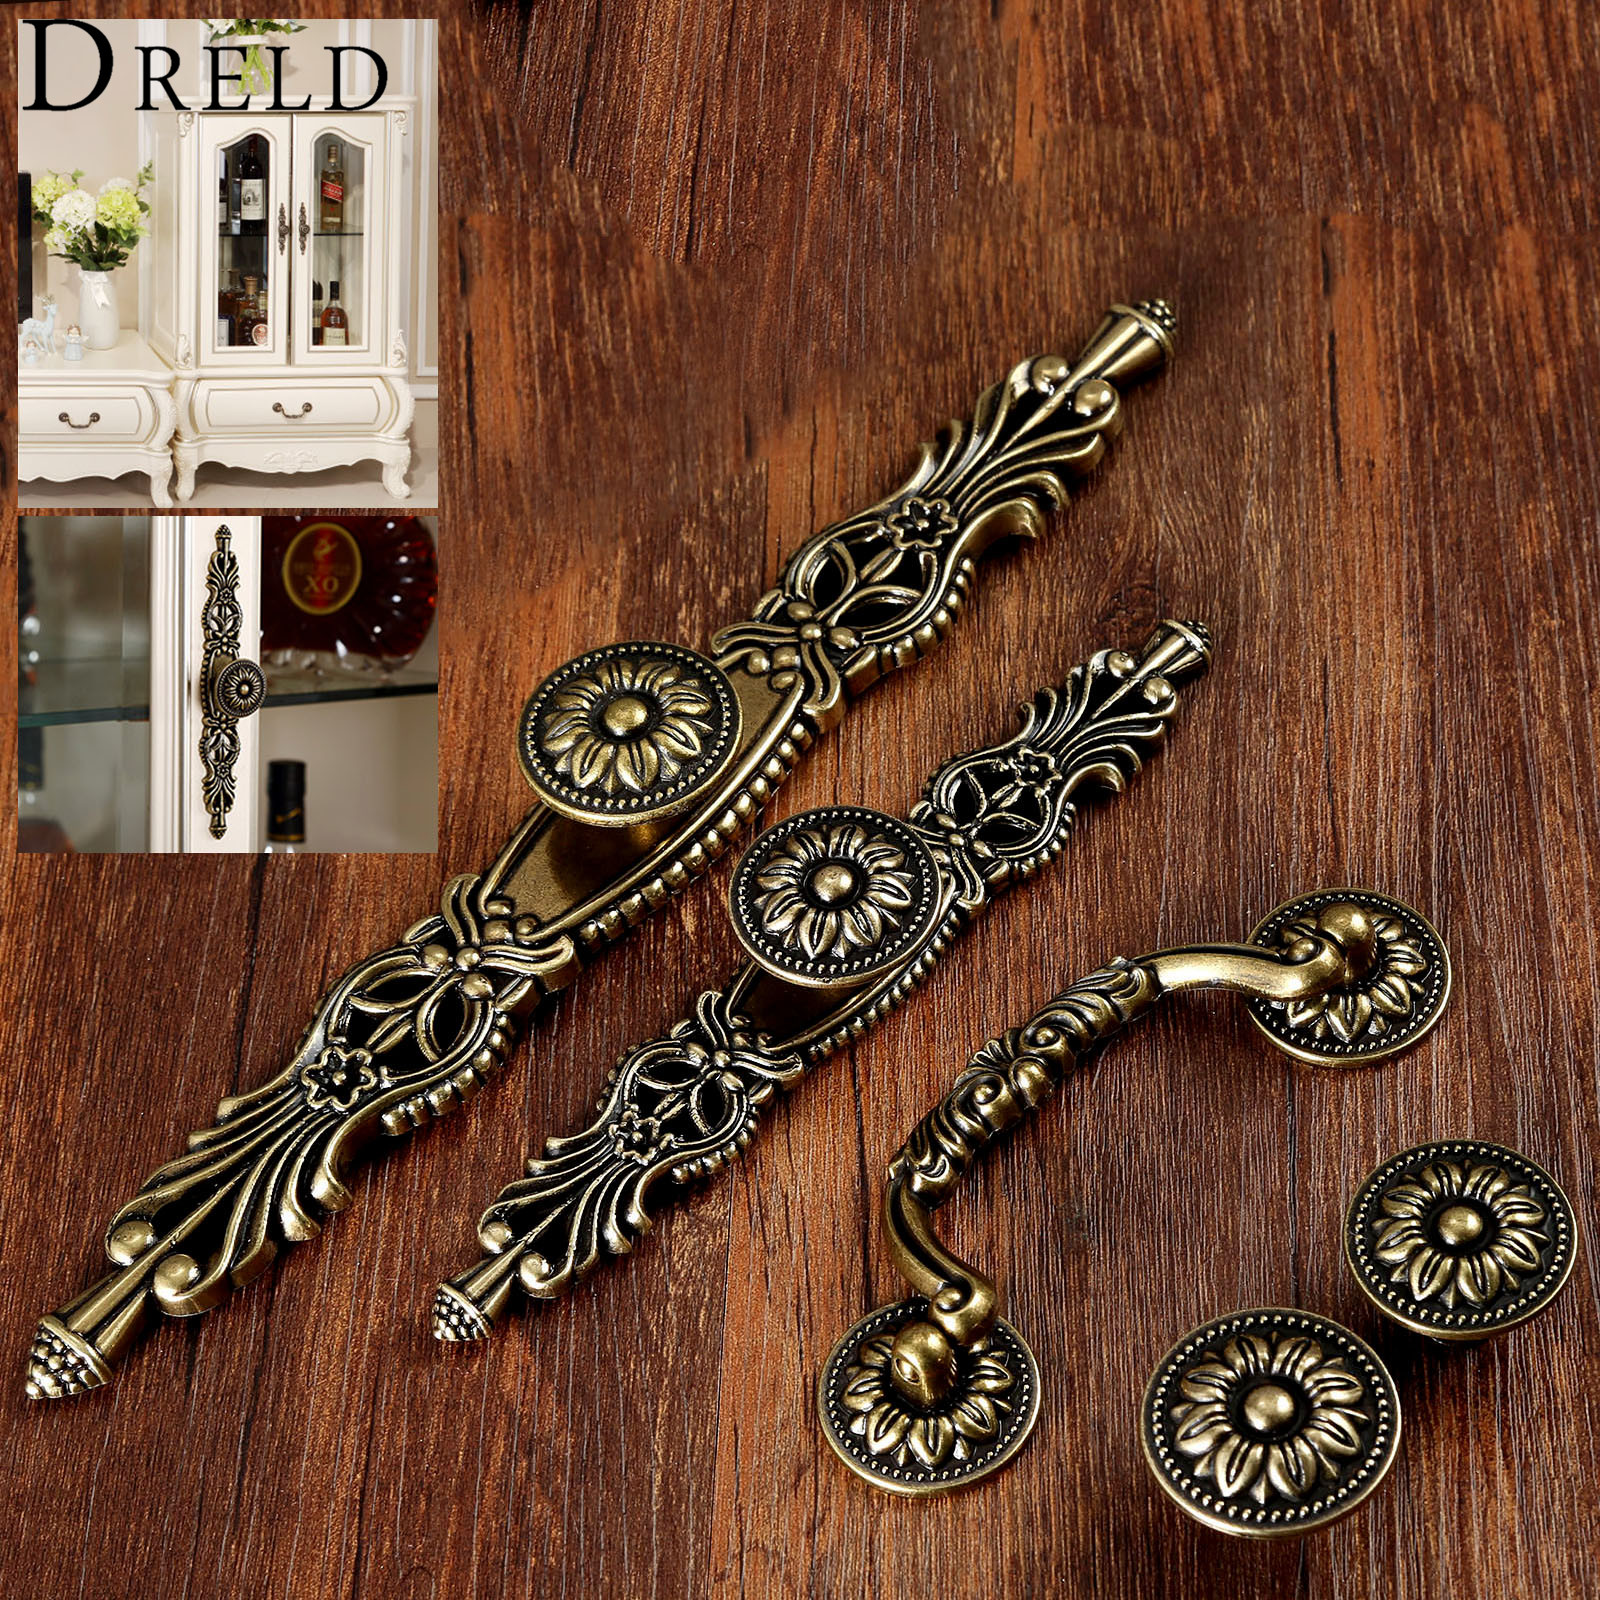 DRELD Antique Furniture Handle Vintage Cabinet Knobs and Handles Wardrobe Cupboard Drawer Kitchen Pull Knob Furniture Hareware 1 pair 96mm vintage furniture cupboard wardrobe handles and knobs antique bronze alloy kitchen cabinet door drawer pull handle